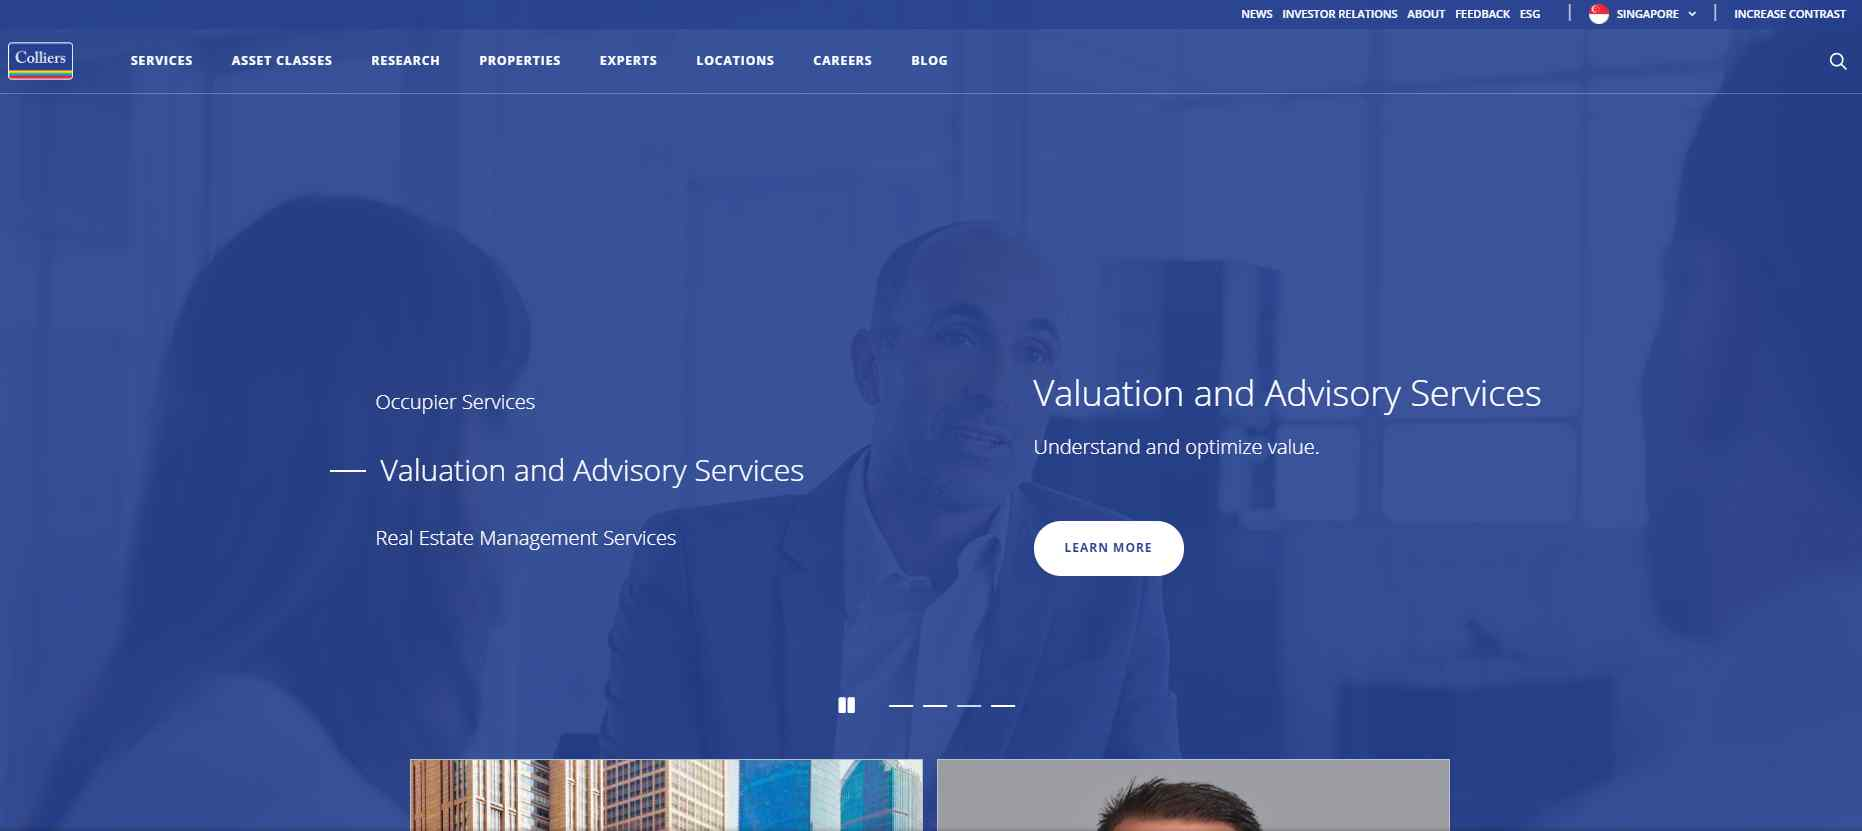 colliers-top-property-management-service-providers-in-singapore-2